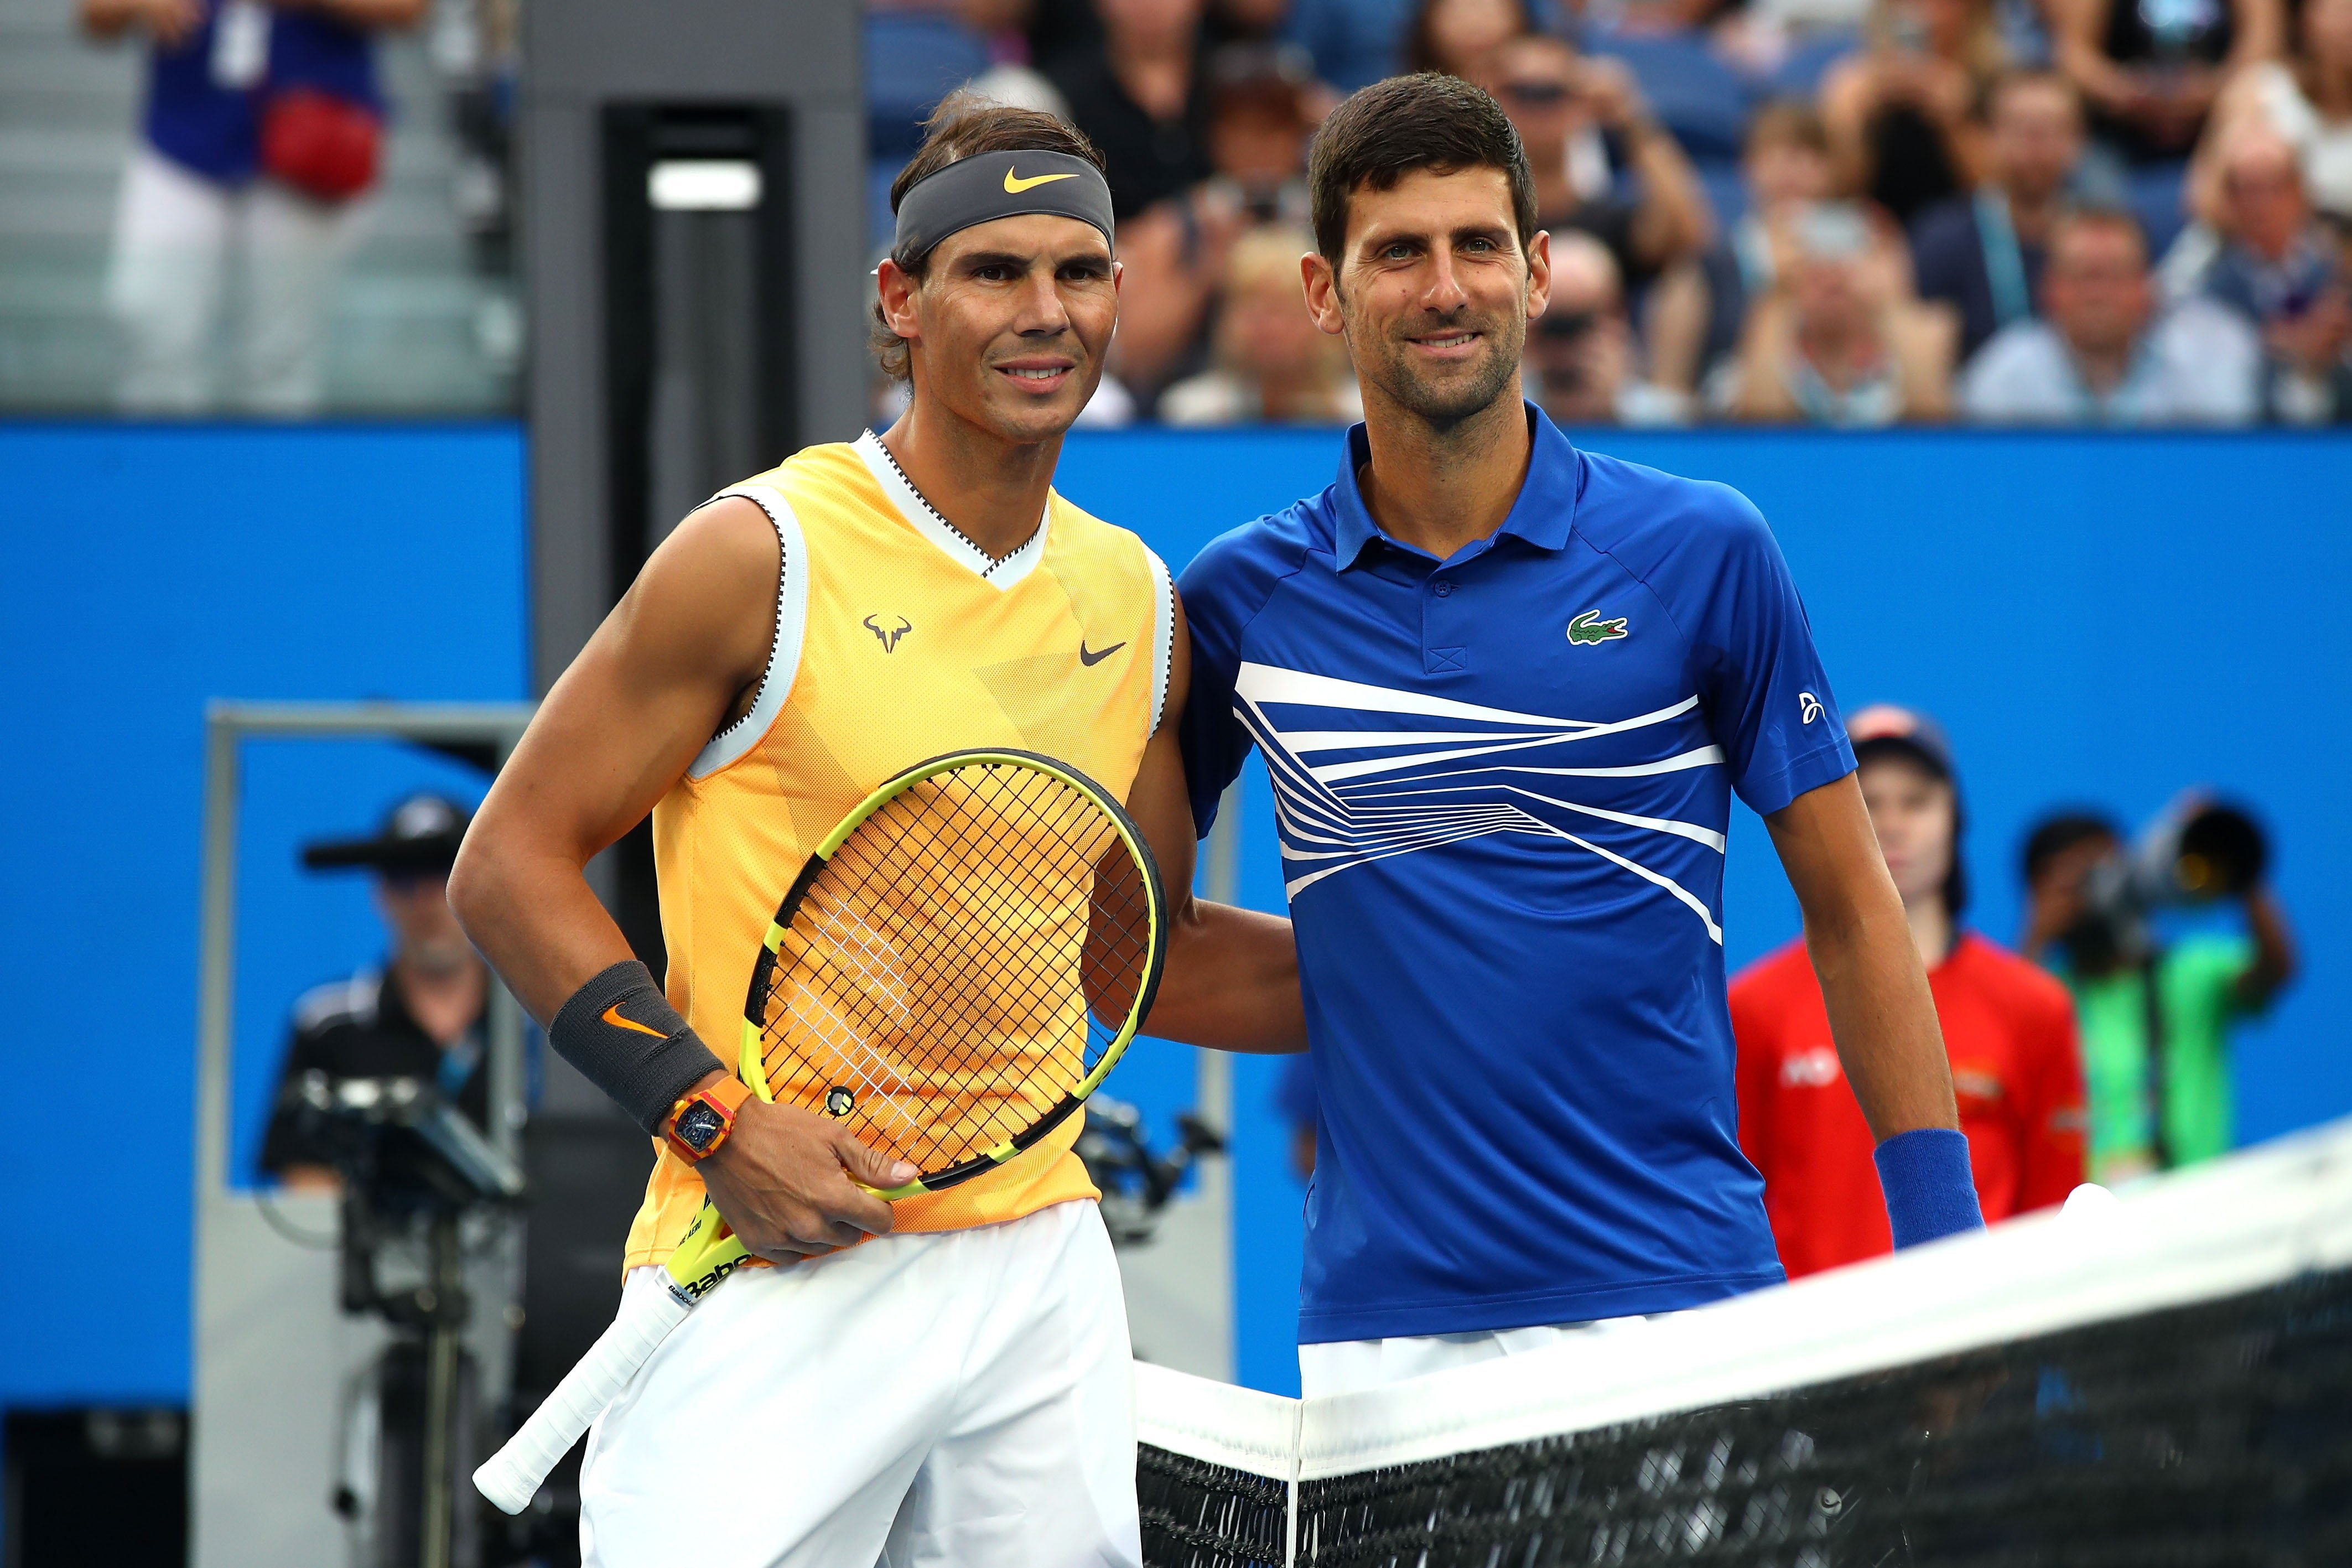 ATP Finals: Rafa Nadal and Novak Djokovic battle for No. 1 … but will Spaniard play?